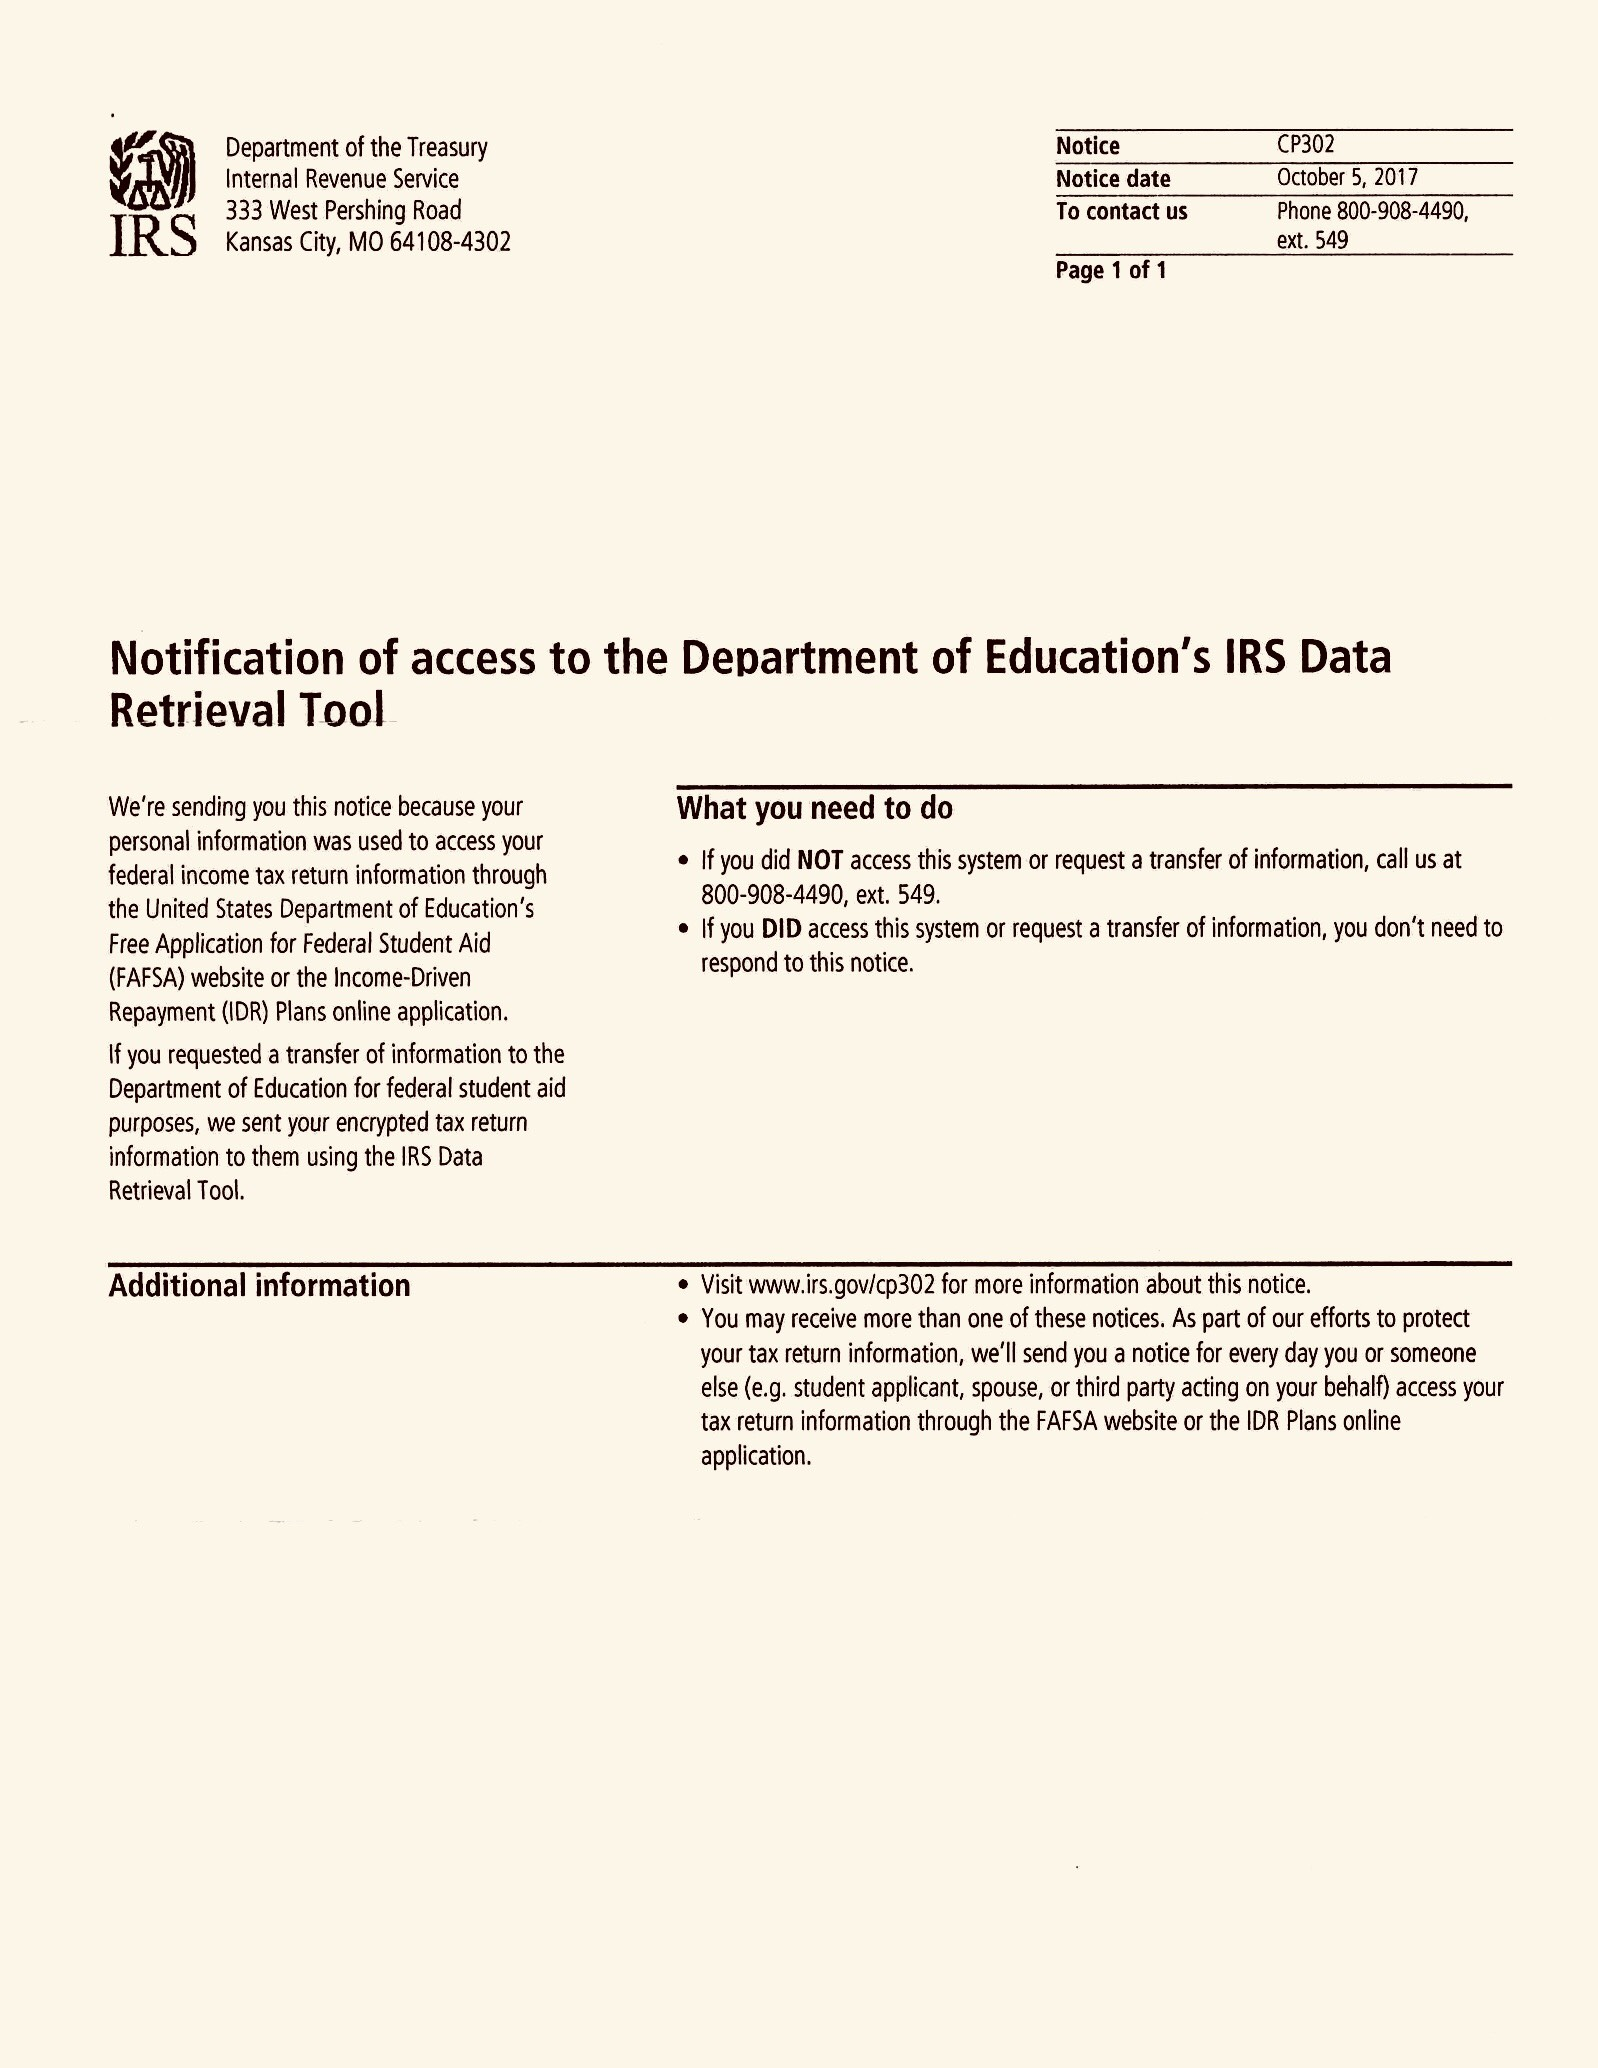 IRS Data Retrieval Tool for FAFSA   Notification Letter